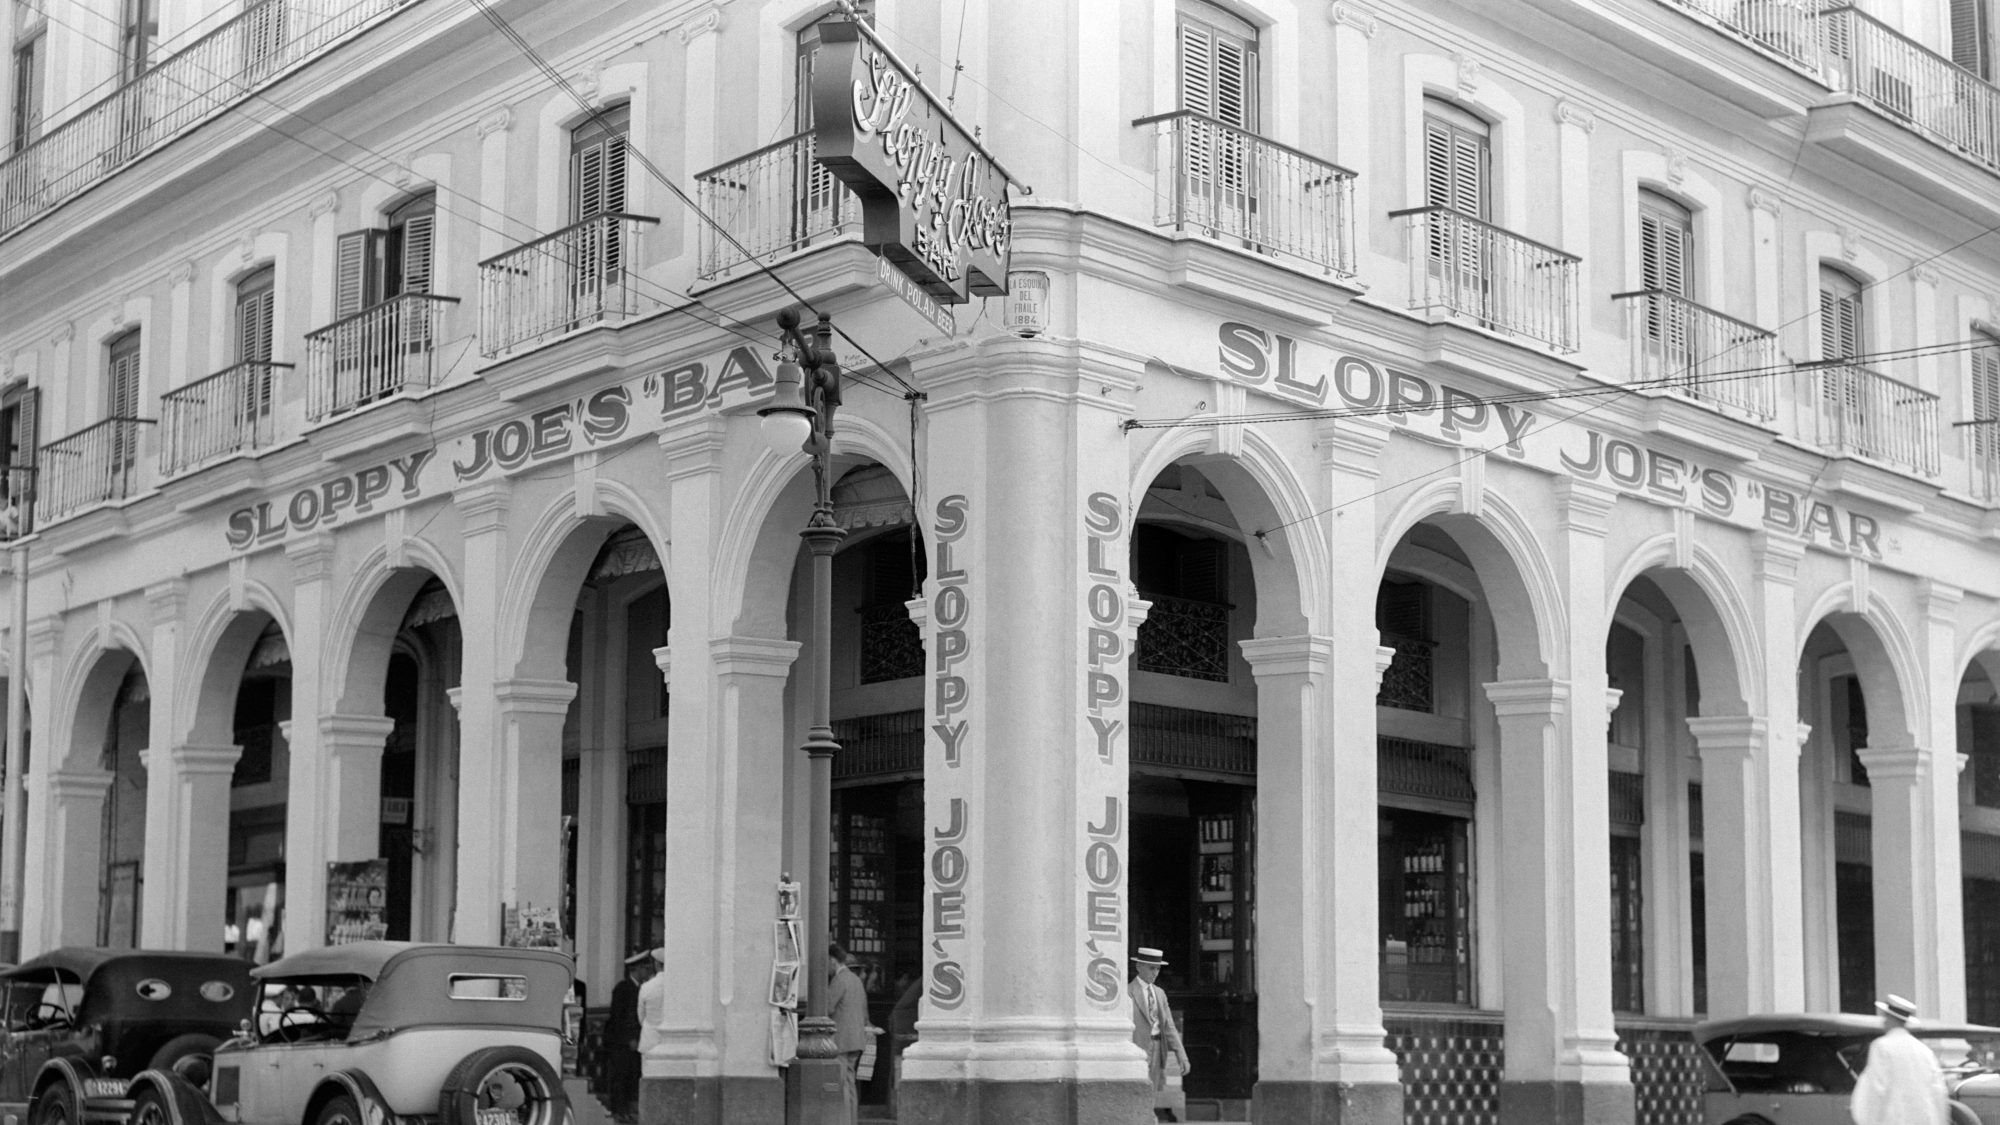 FACADE OF SLOPPY JOE'S BAR  HAVANA CUBA